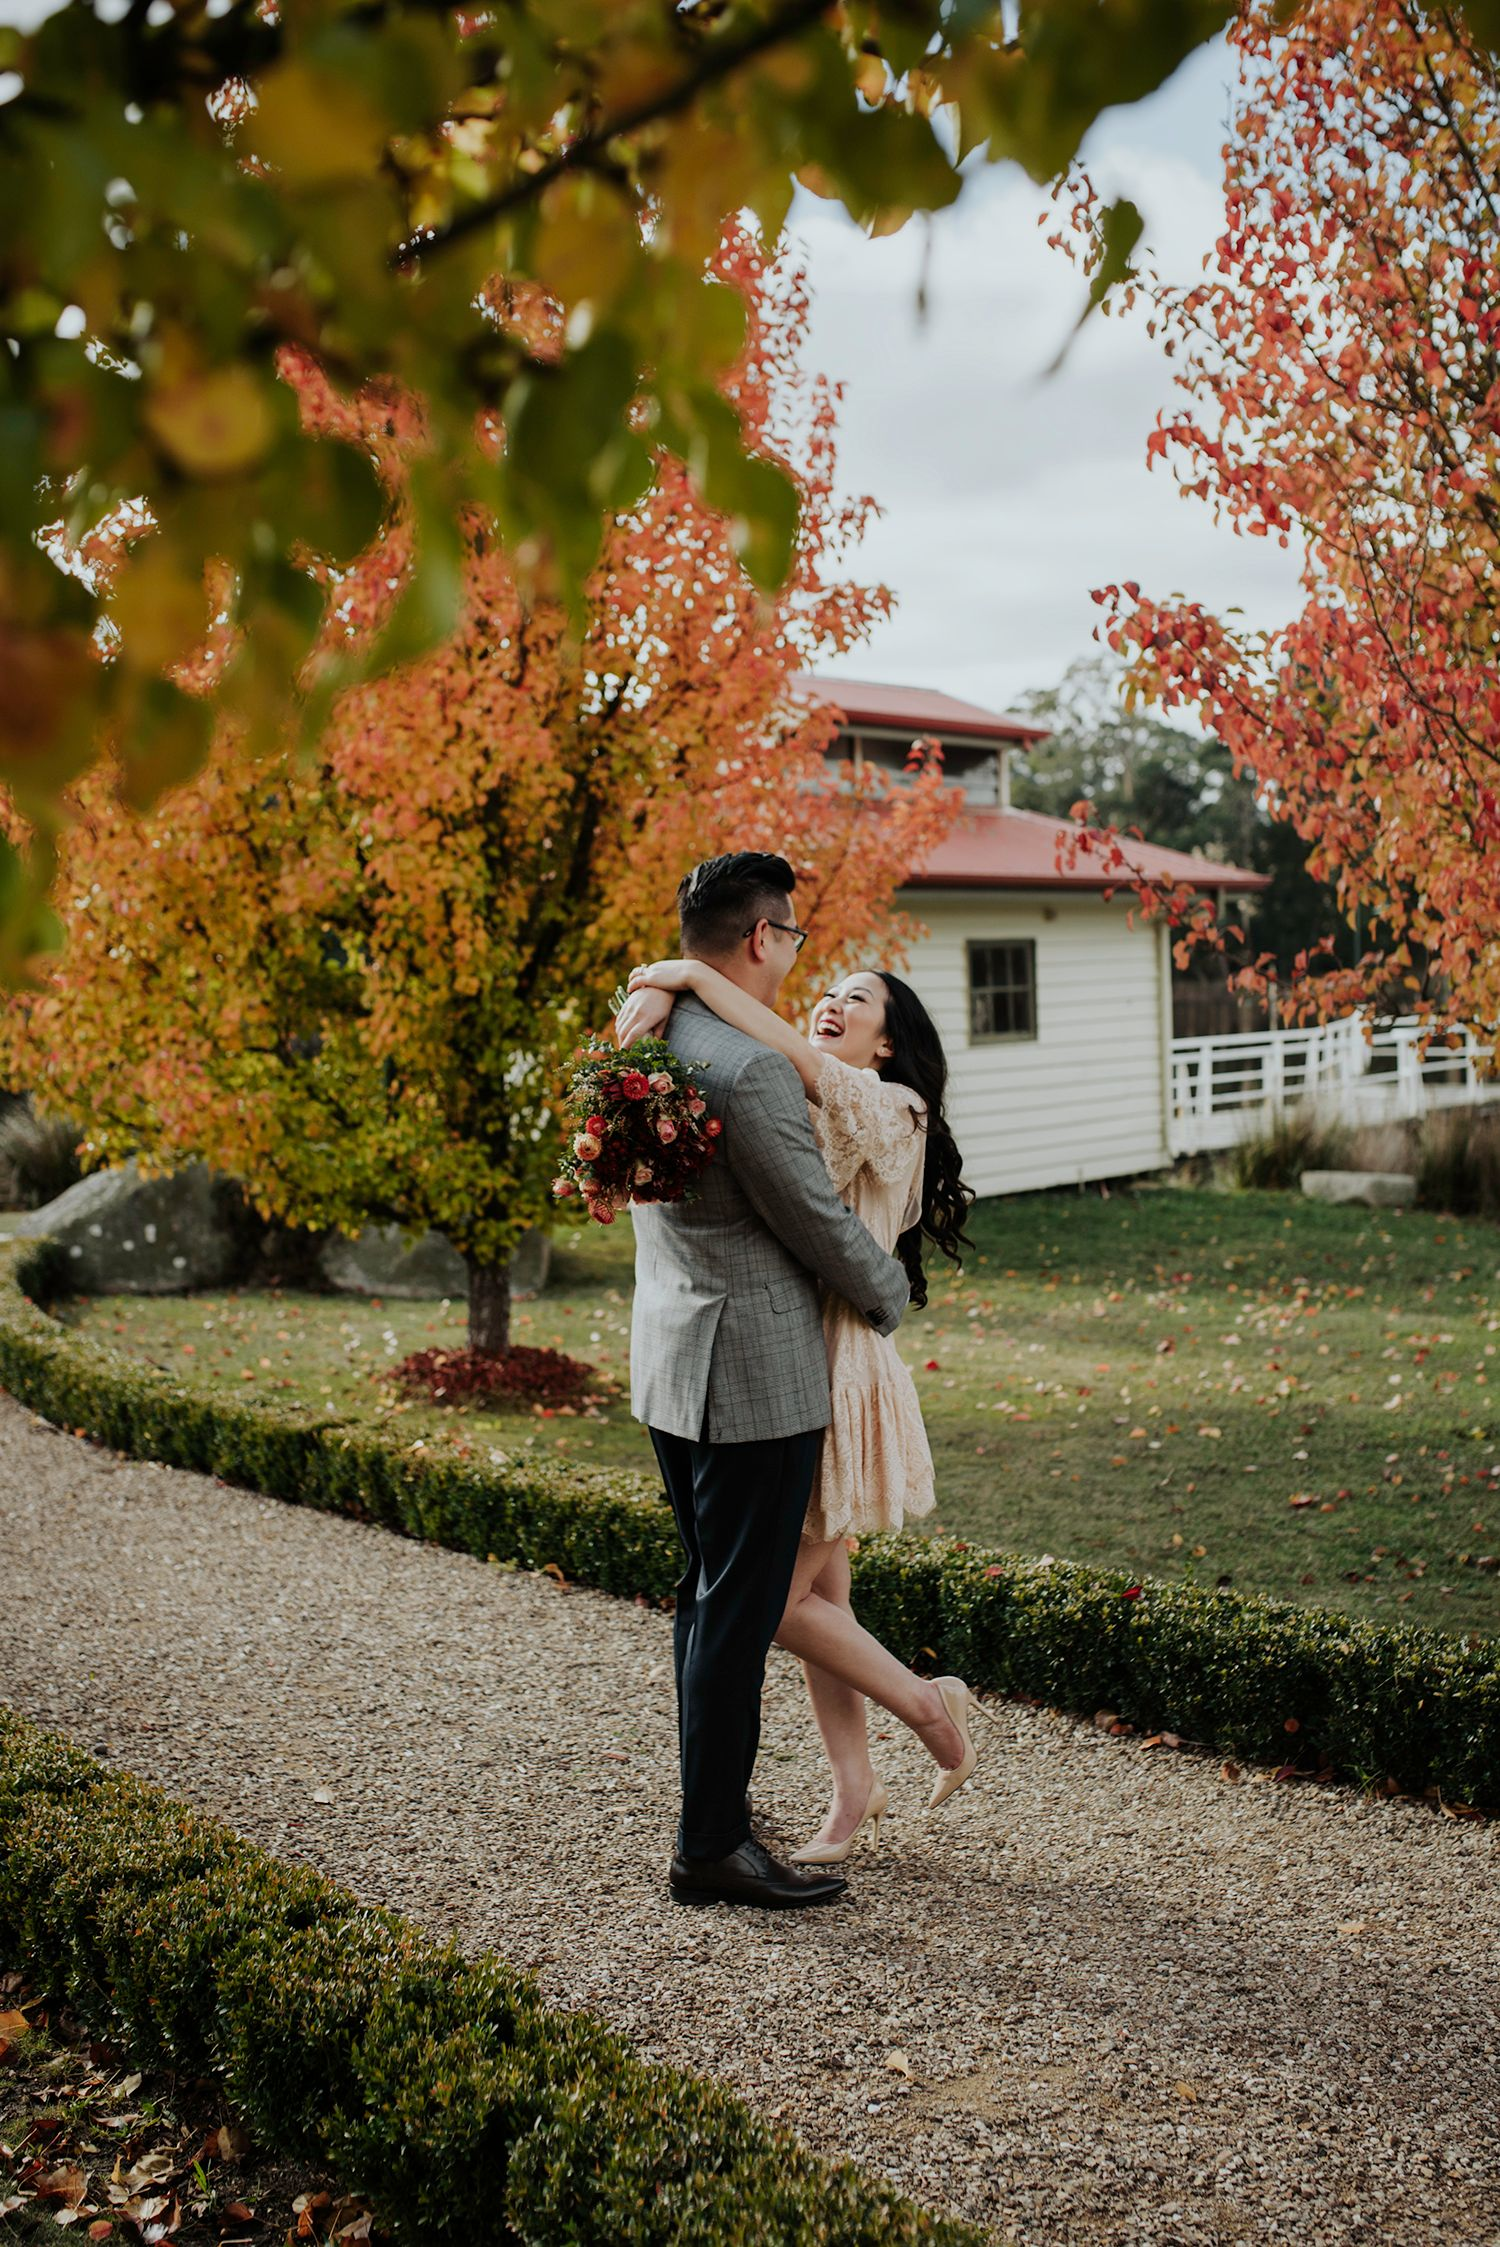 Candid relaxed wedding prewedding engagement photography couple in autumn Melbourne